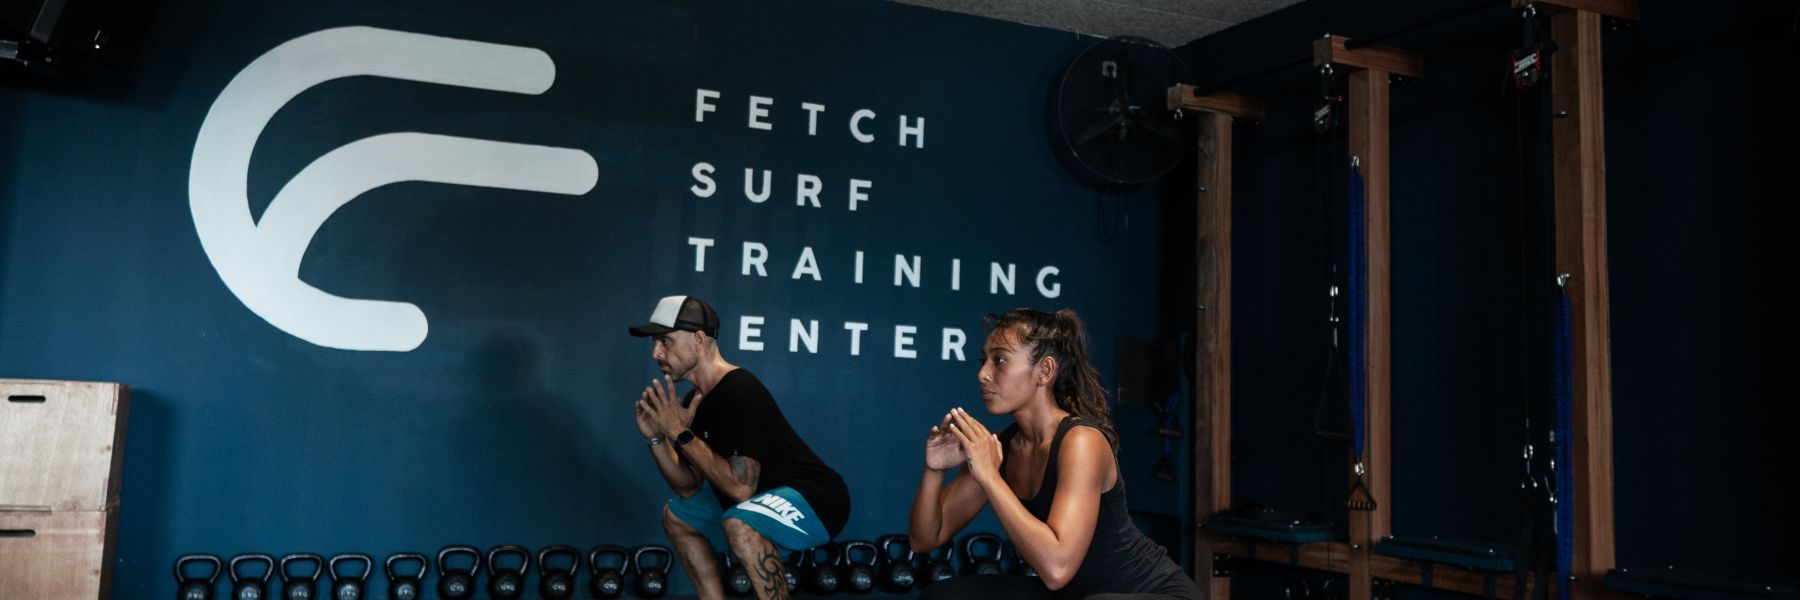 Fetch Surf Training Center image